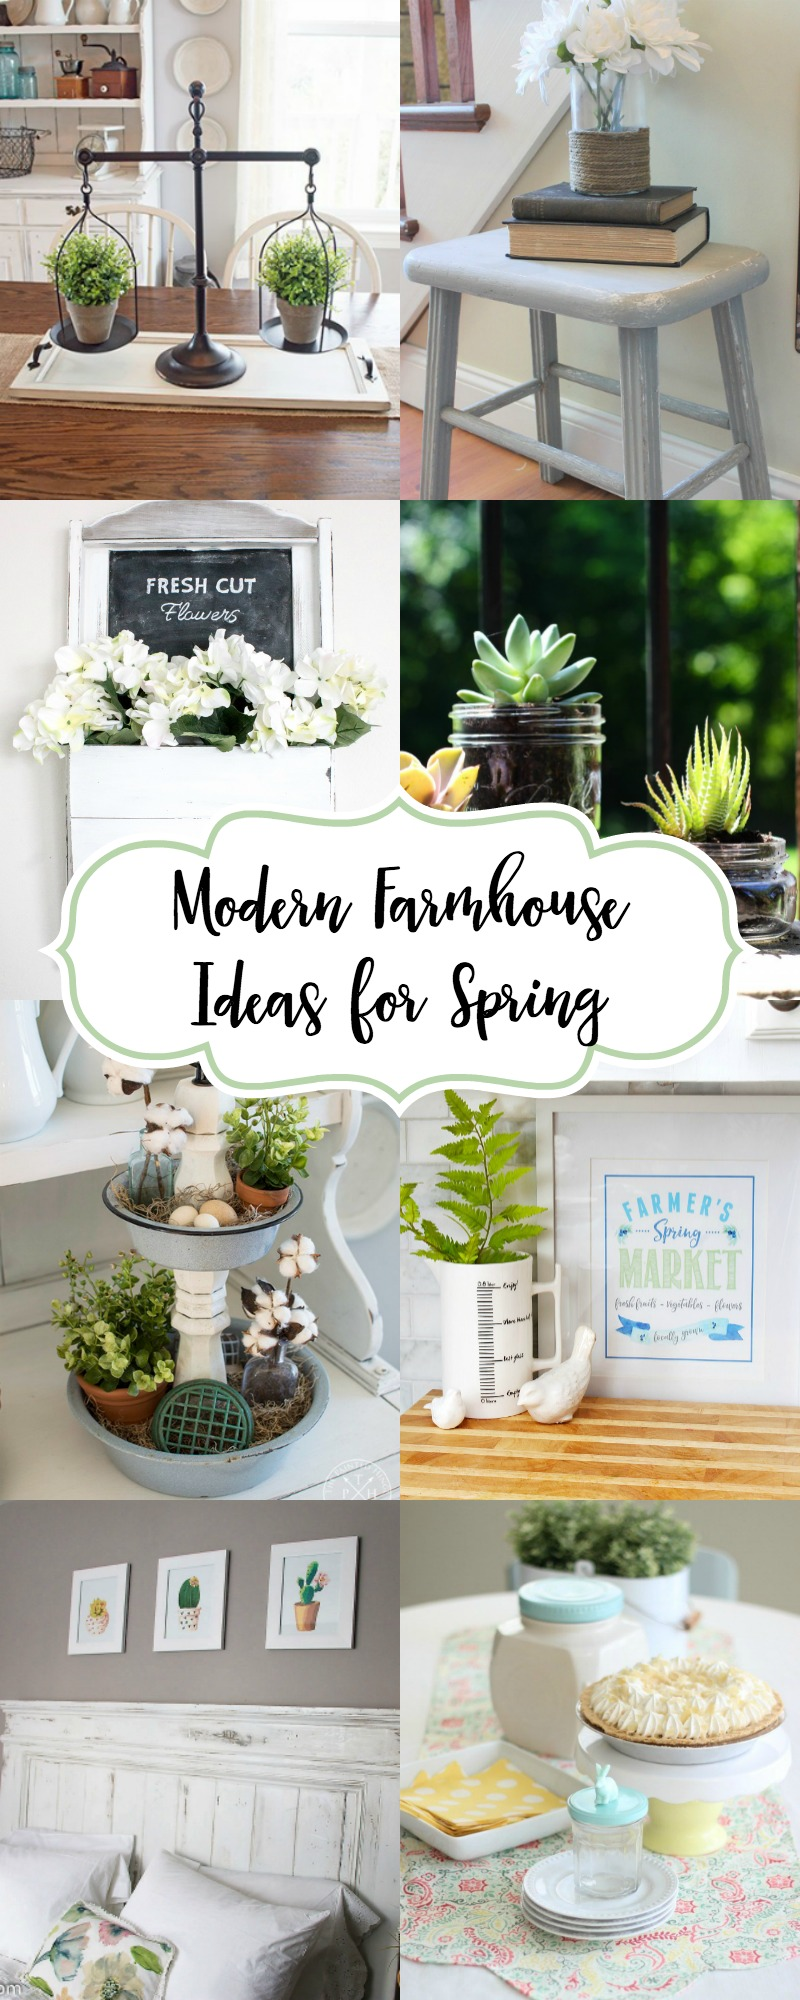 Modern Farmhouse Spring Home Decor Ideas: Modern Farmhouse Ideas For Spring